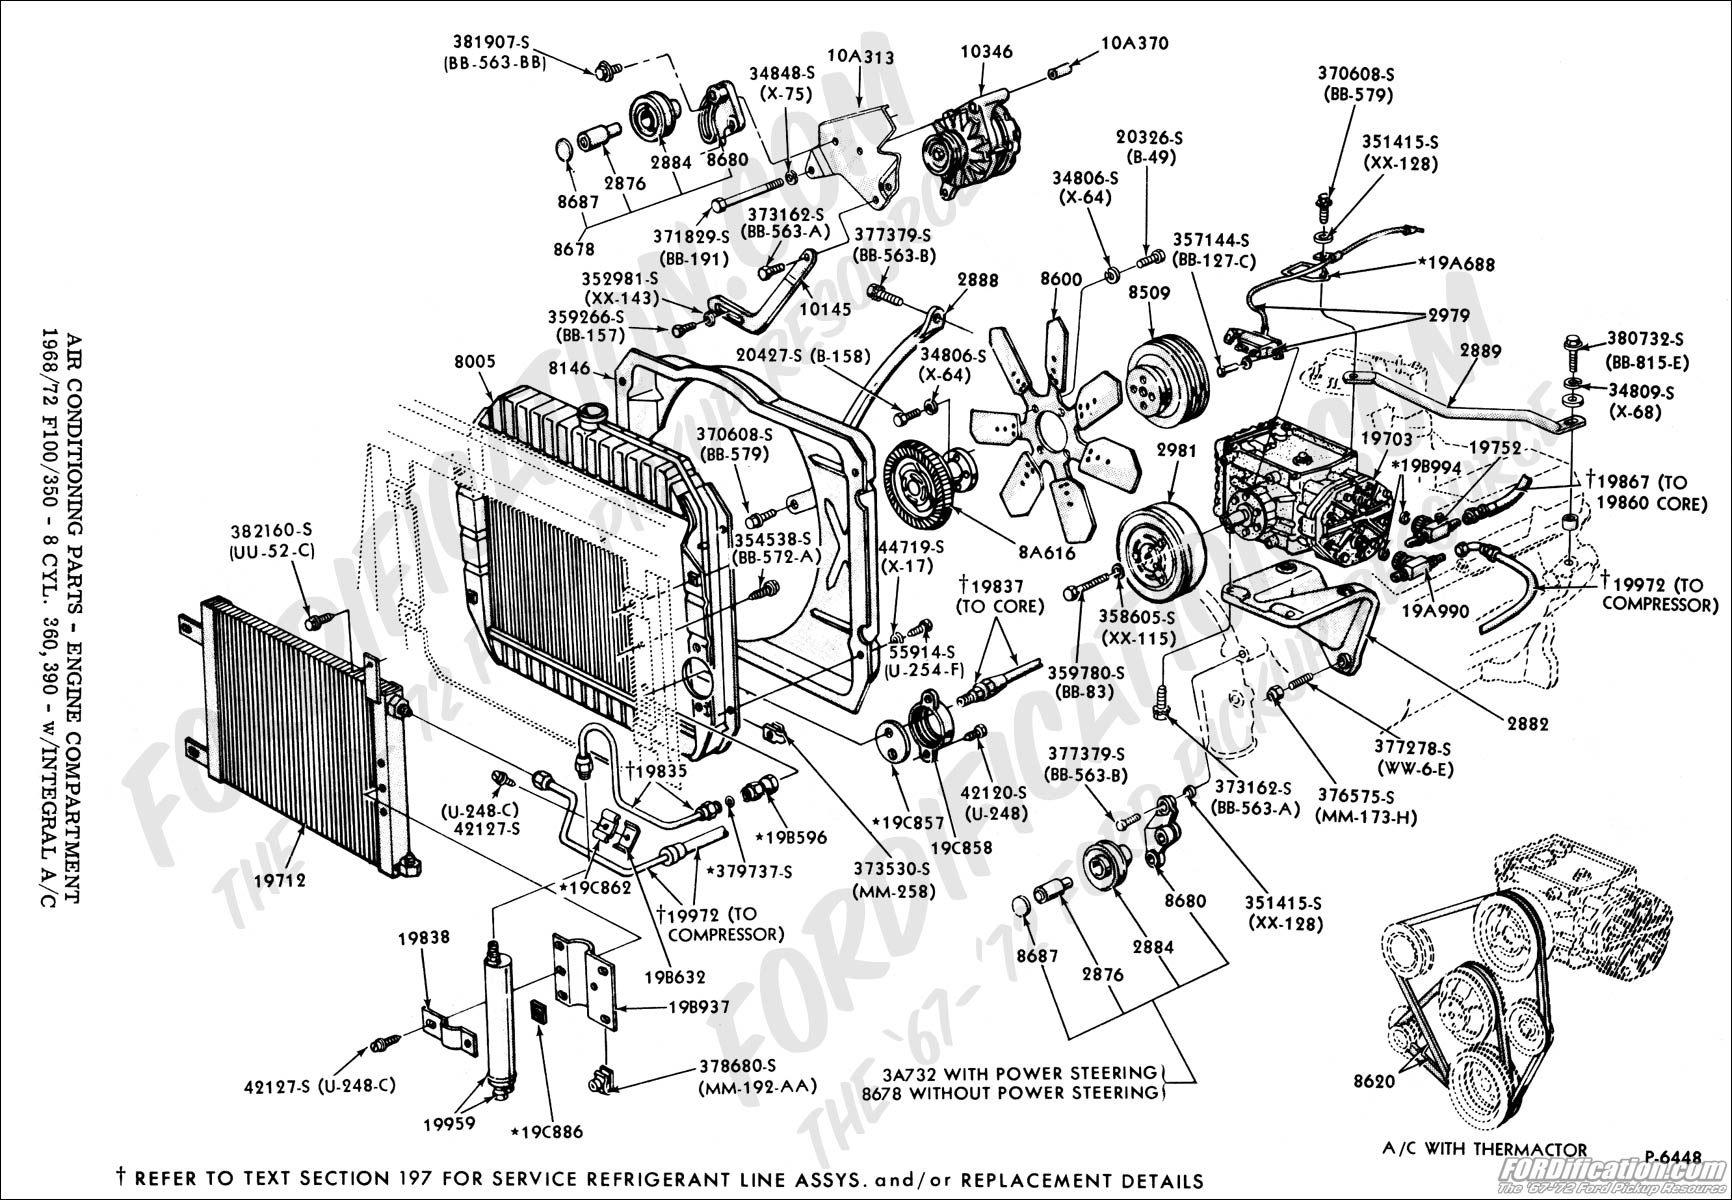 Nissan Pathfinder Air Conditioner Wiring Diagram on 2007 nissan altima blower motor relay location